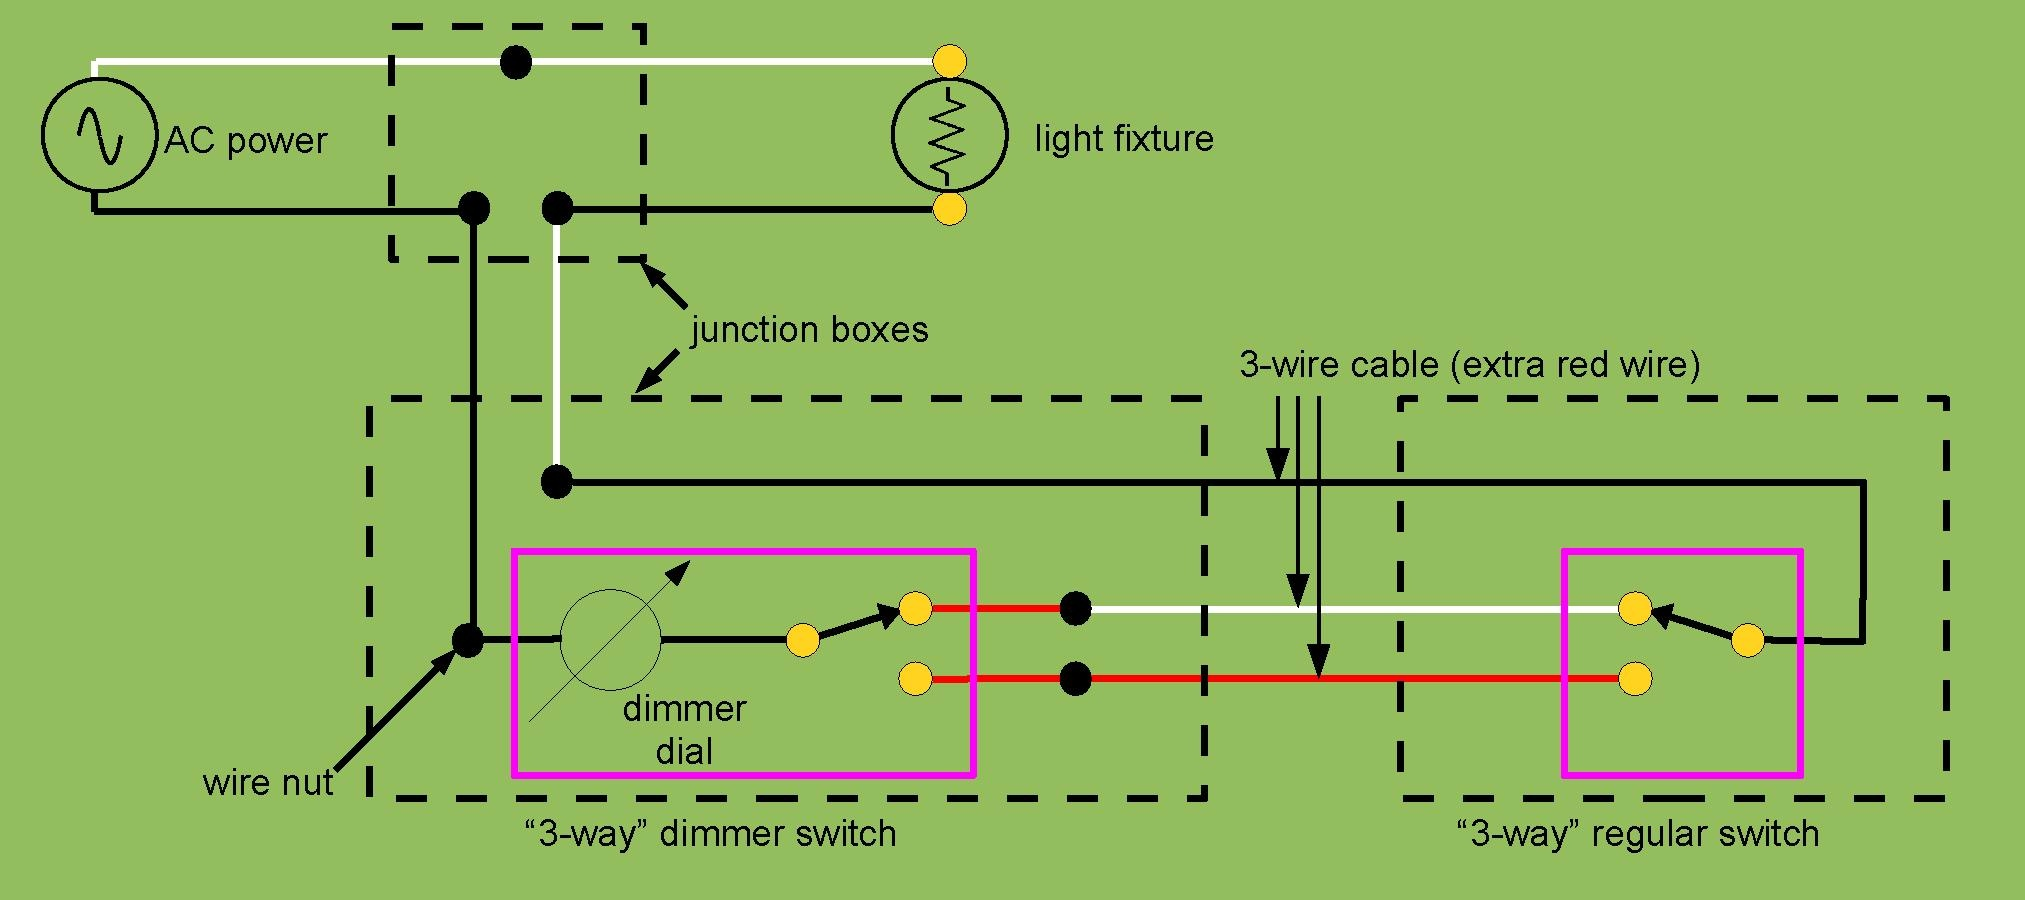 4 Way Dimmer Switch Wiring